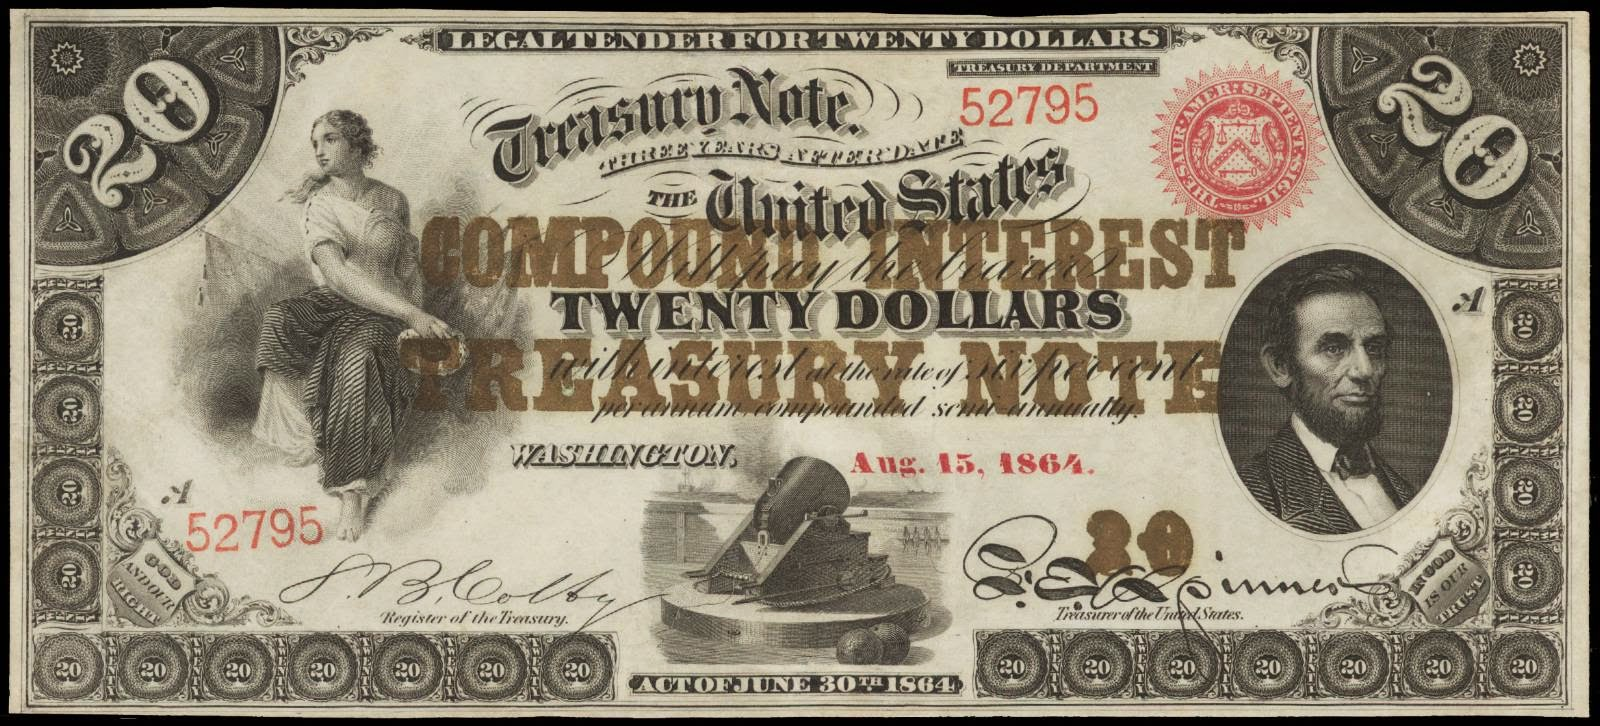 United States 20 Dollar bill, Compound Interest Treasury Note 1864